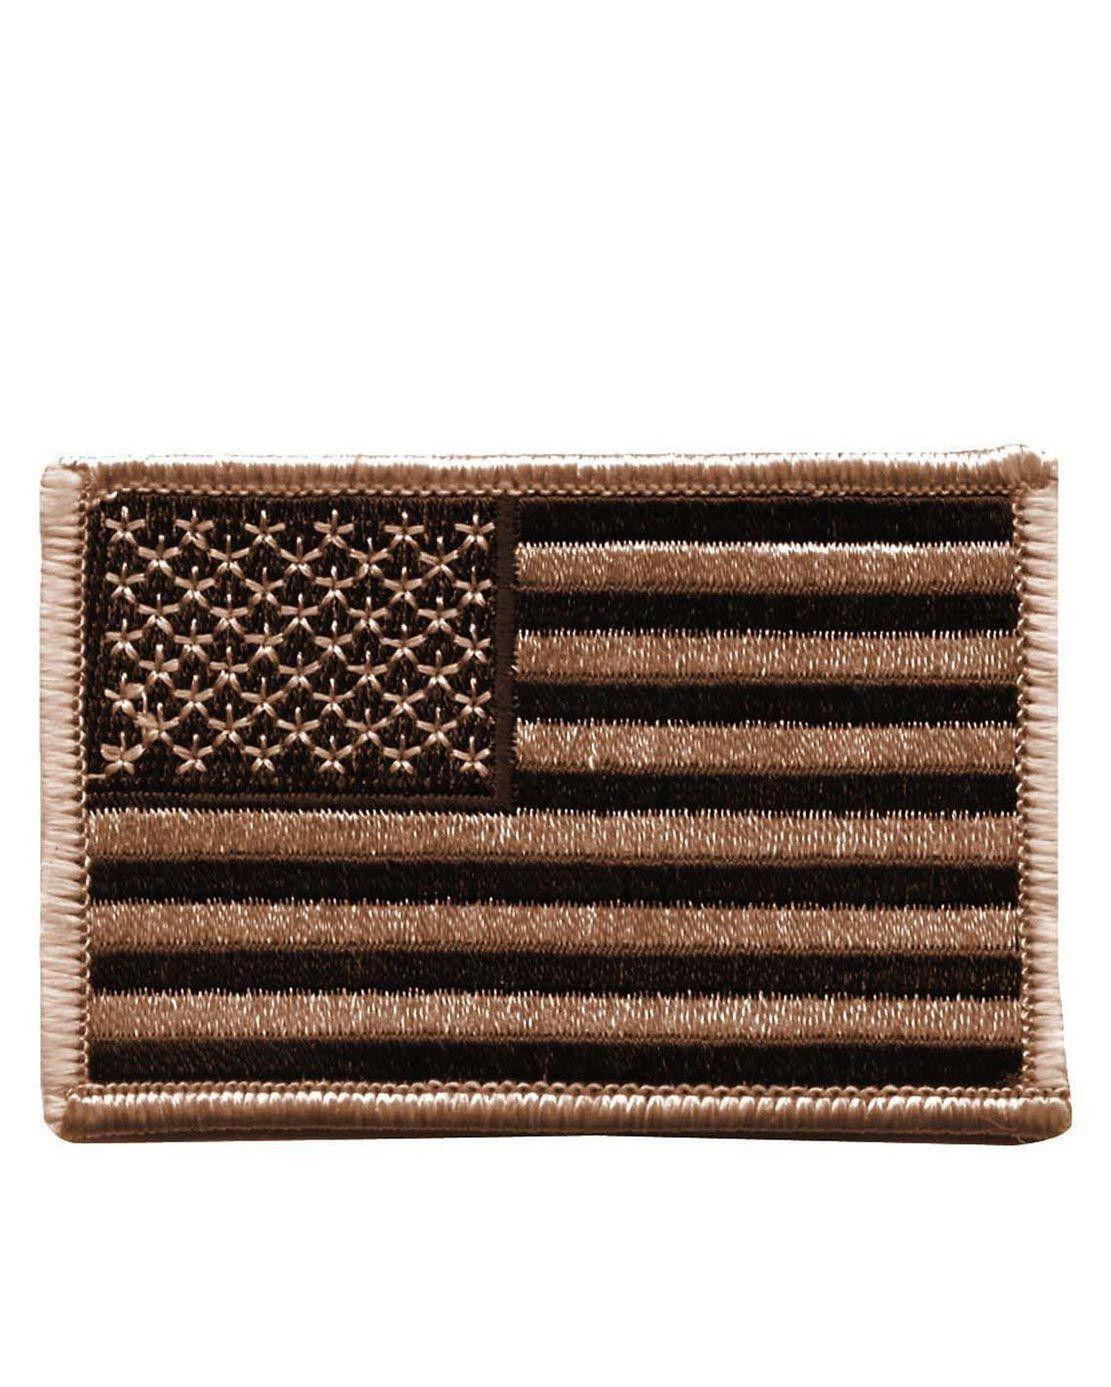 Rothco Patch U.S. Flagga - Strykes/Sys På (Desert Tan, One Size)